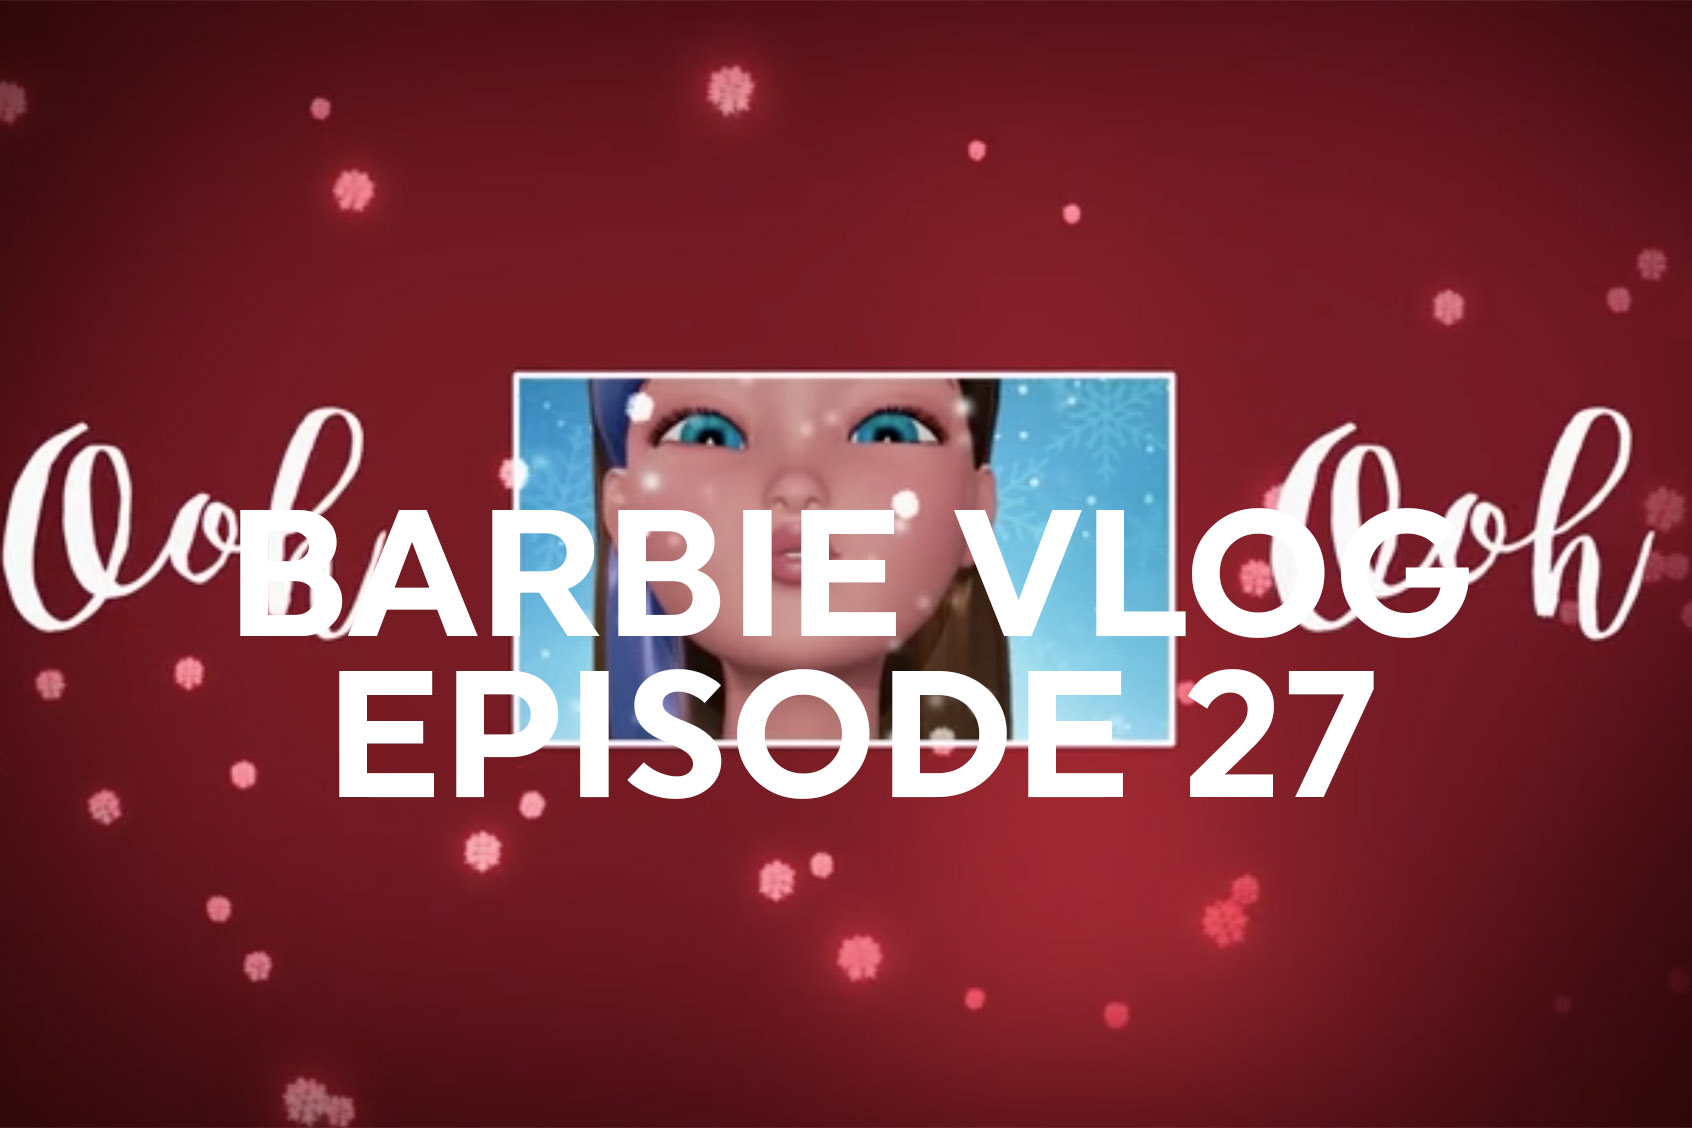 BARBIE VLOG EPISODE 27